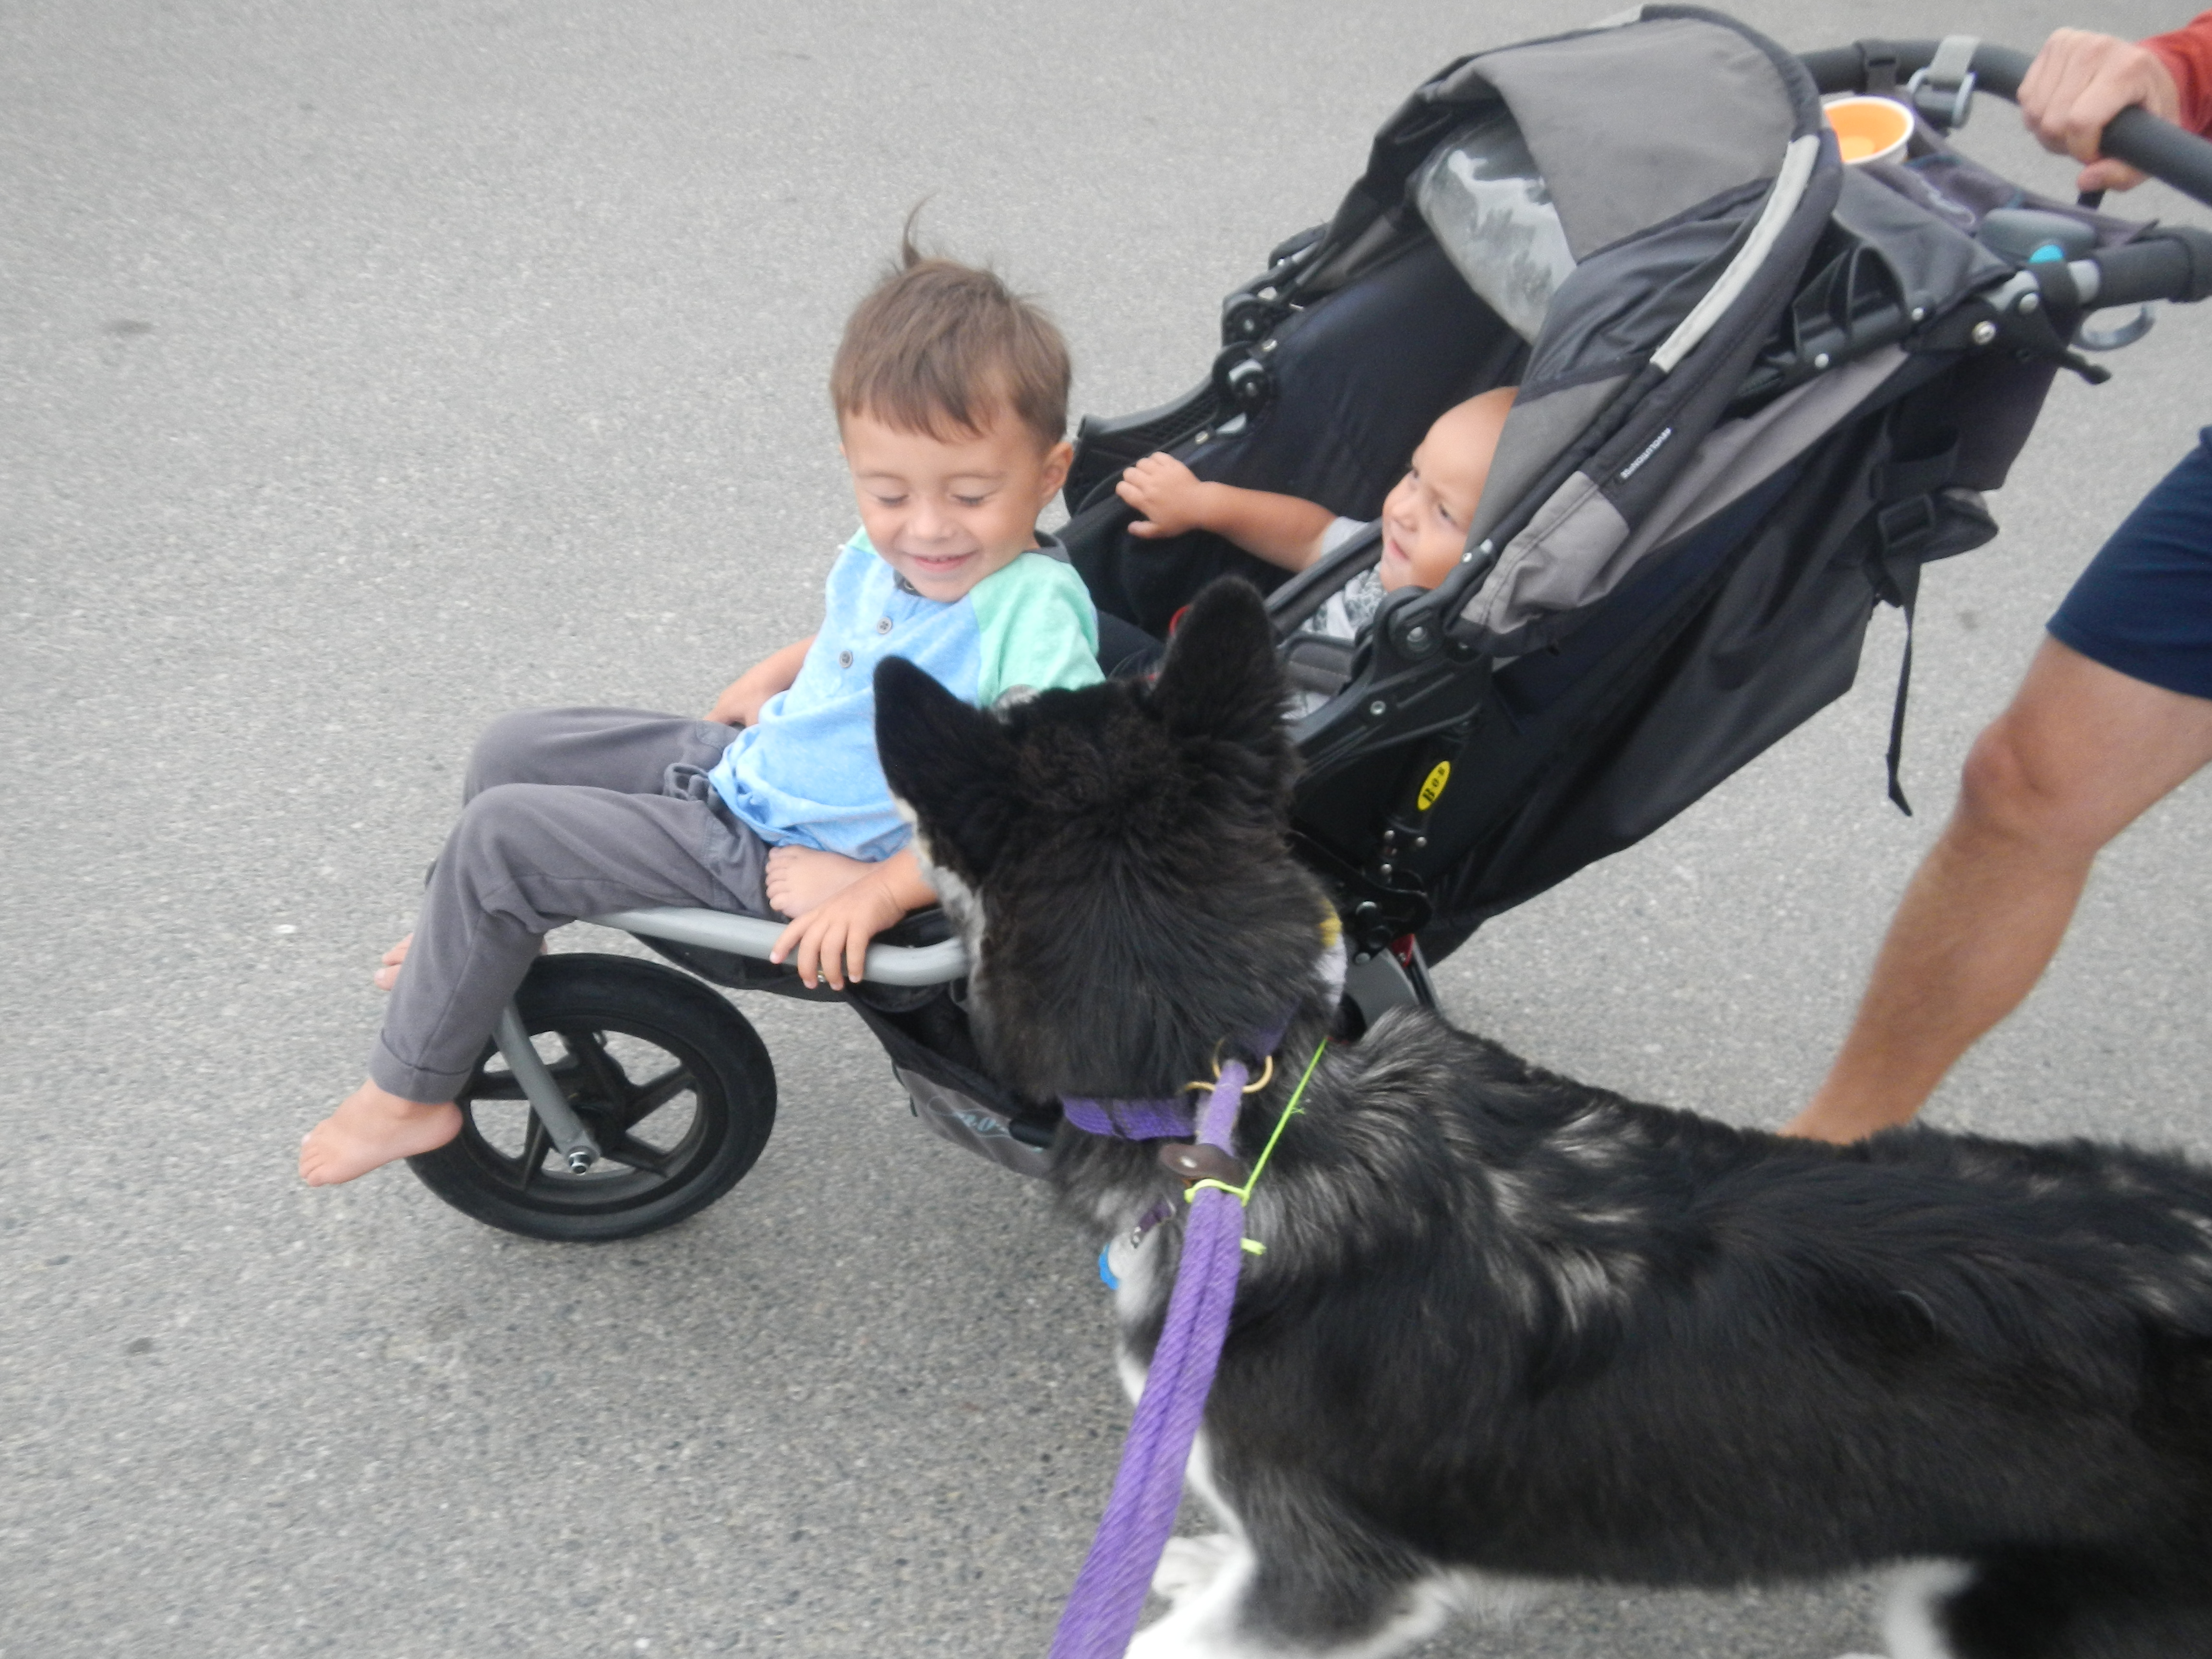 Kay looking at Alan's oldest son in stroller